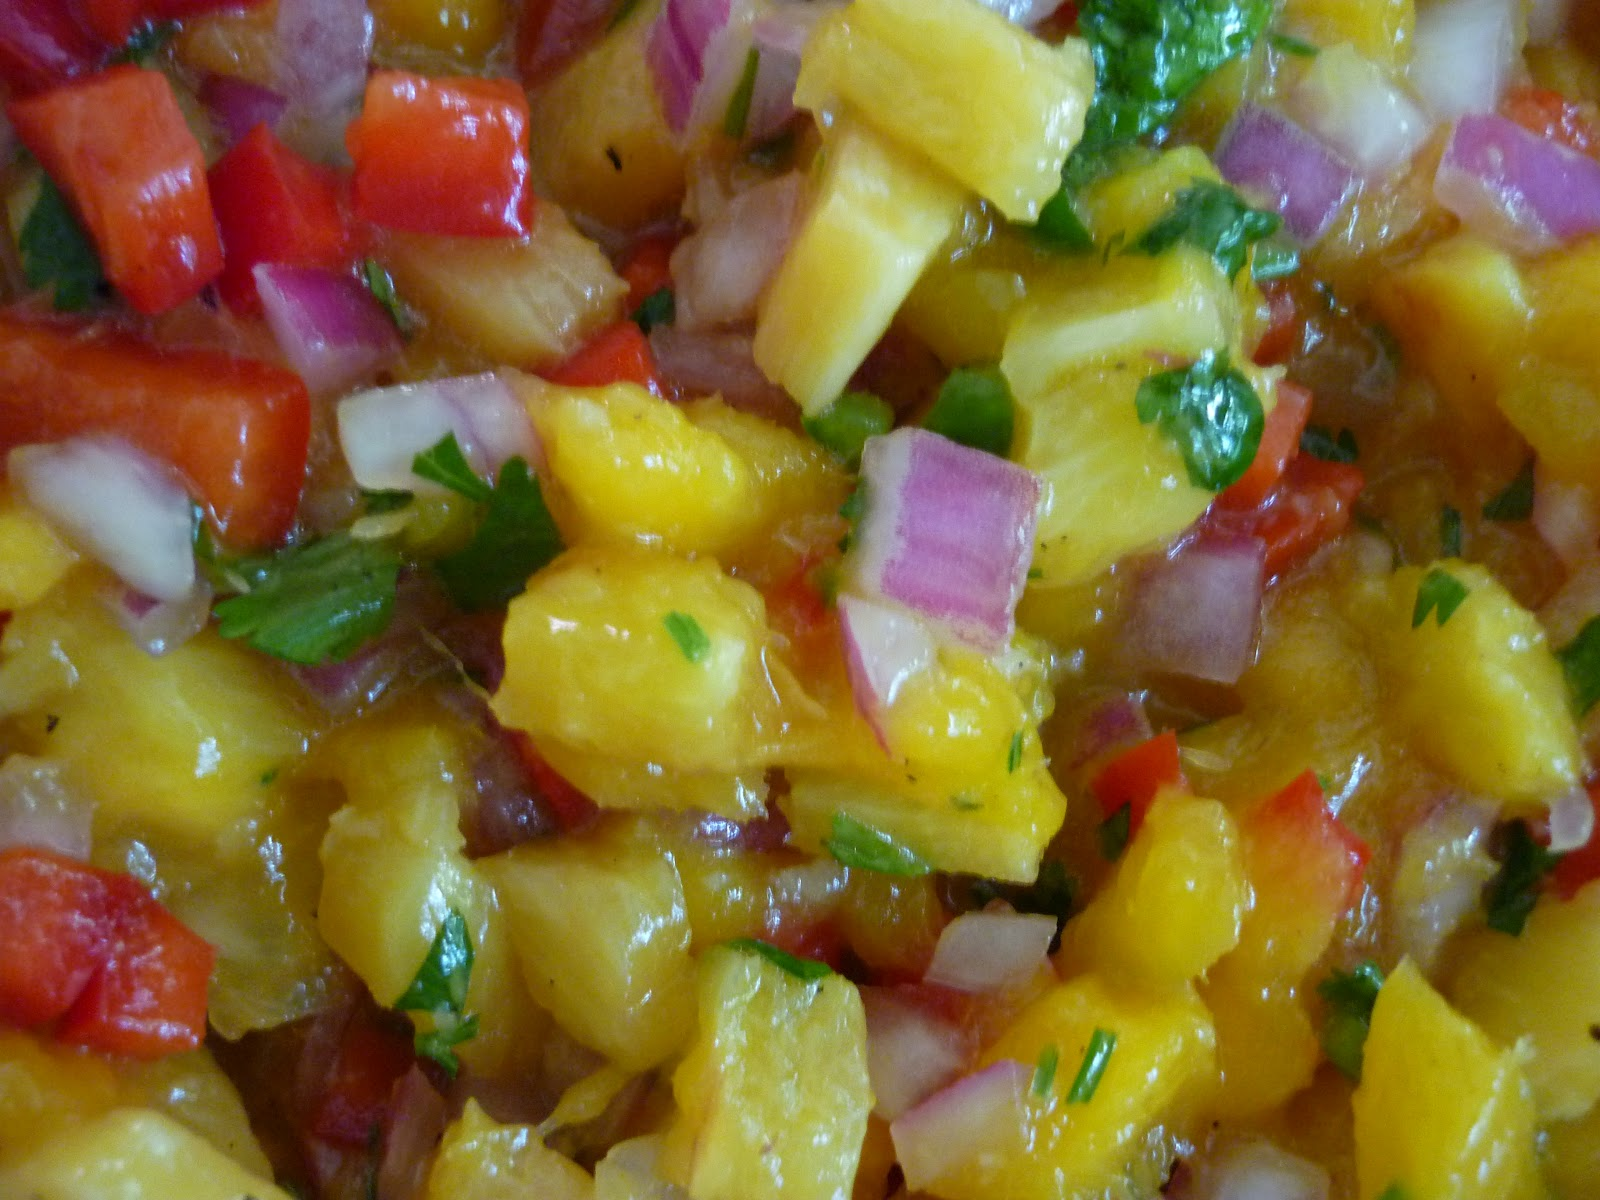 The Nerdy Chef: Pineapple Mango Salsa